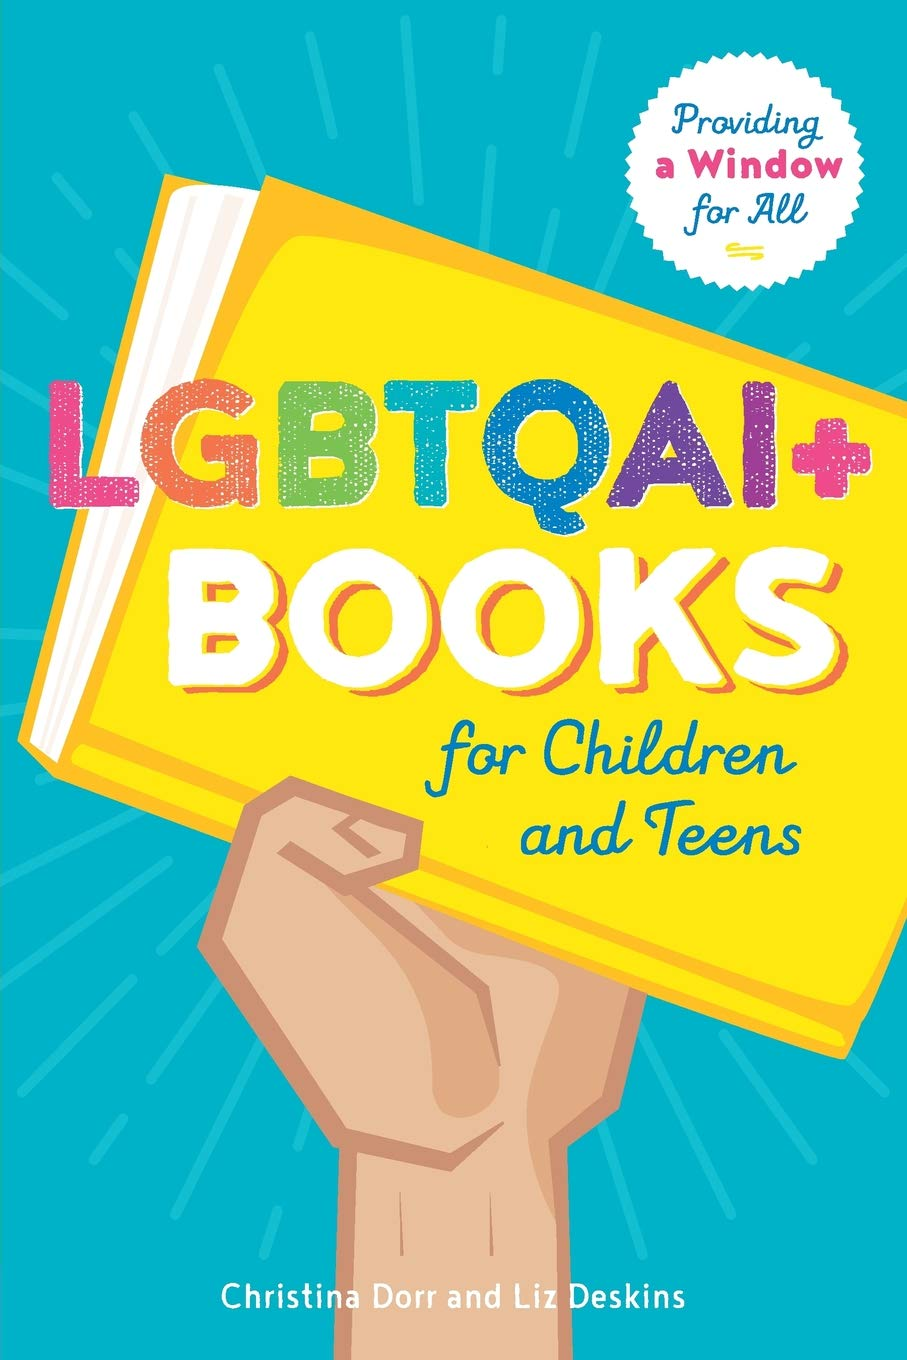 Lgbtqai+ Books for Children and Teens: Providing a Window for All:  Christina Dorr, Liz Deskin: 9780838916490: Books - Amazon.ca